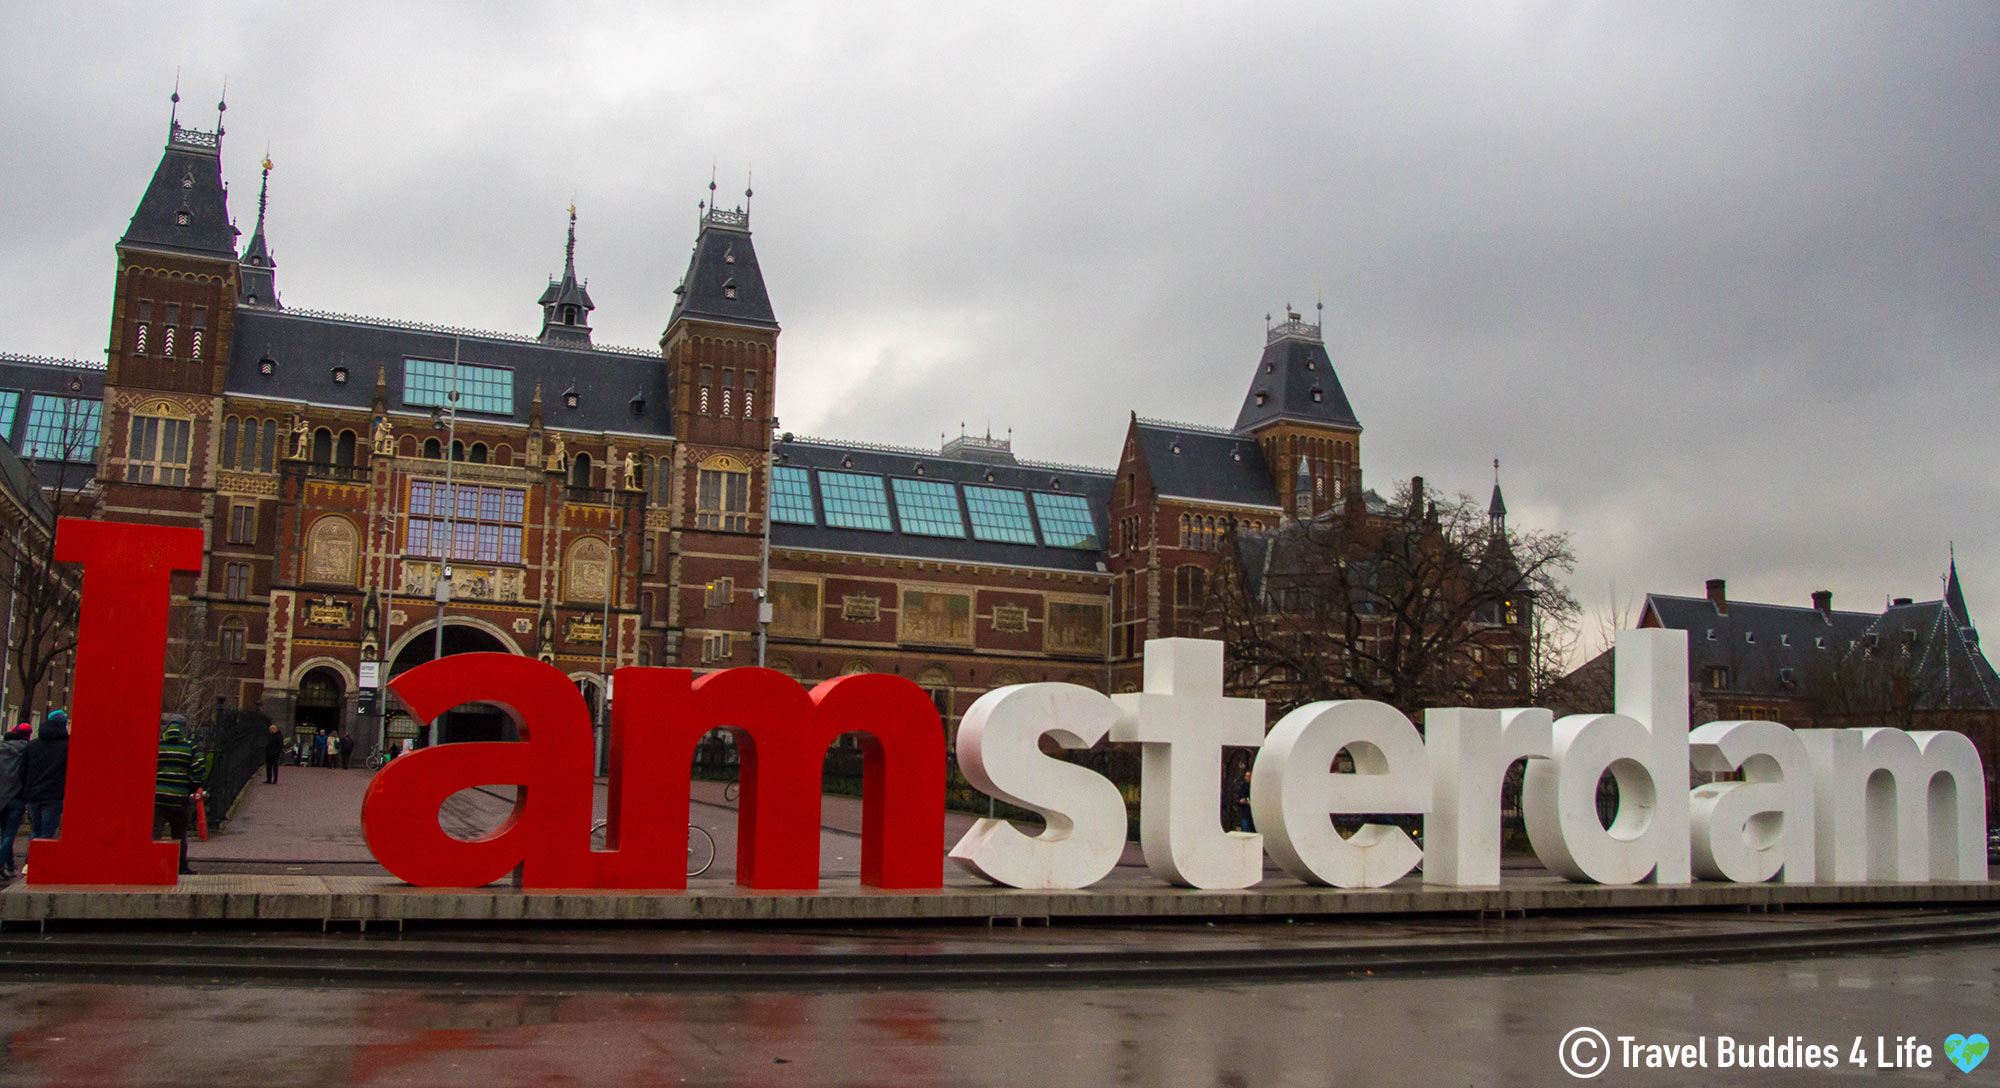 The Large I AMSTERDAM Sign In The Netherlands, Europe